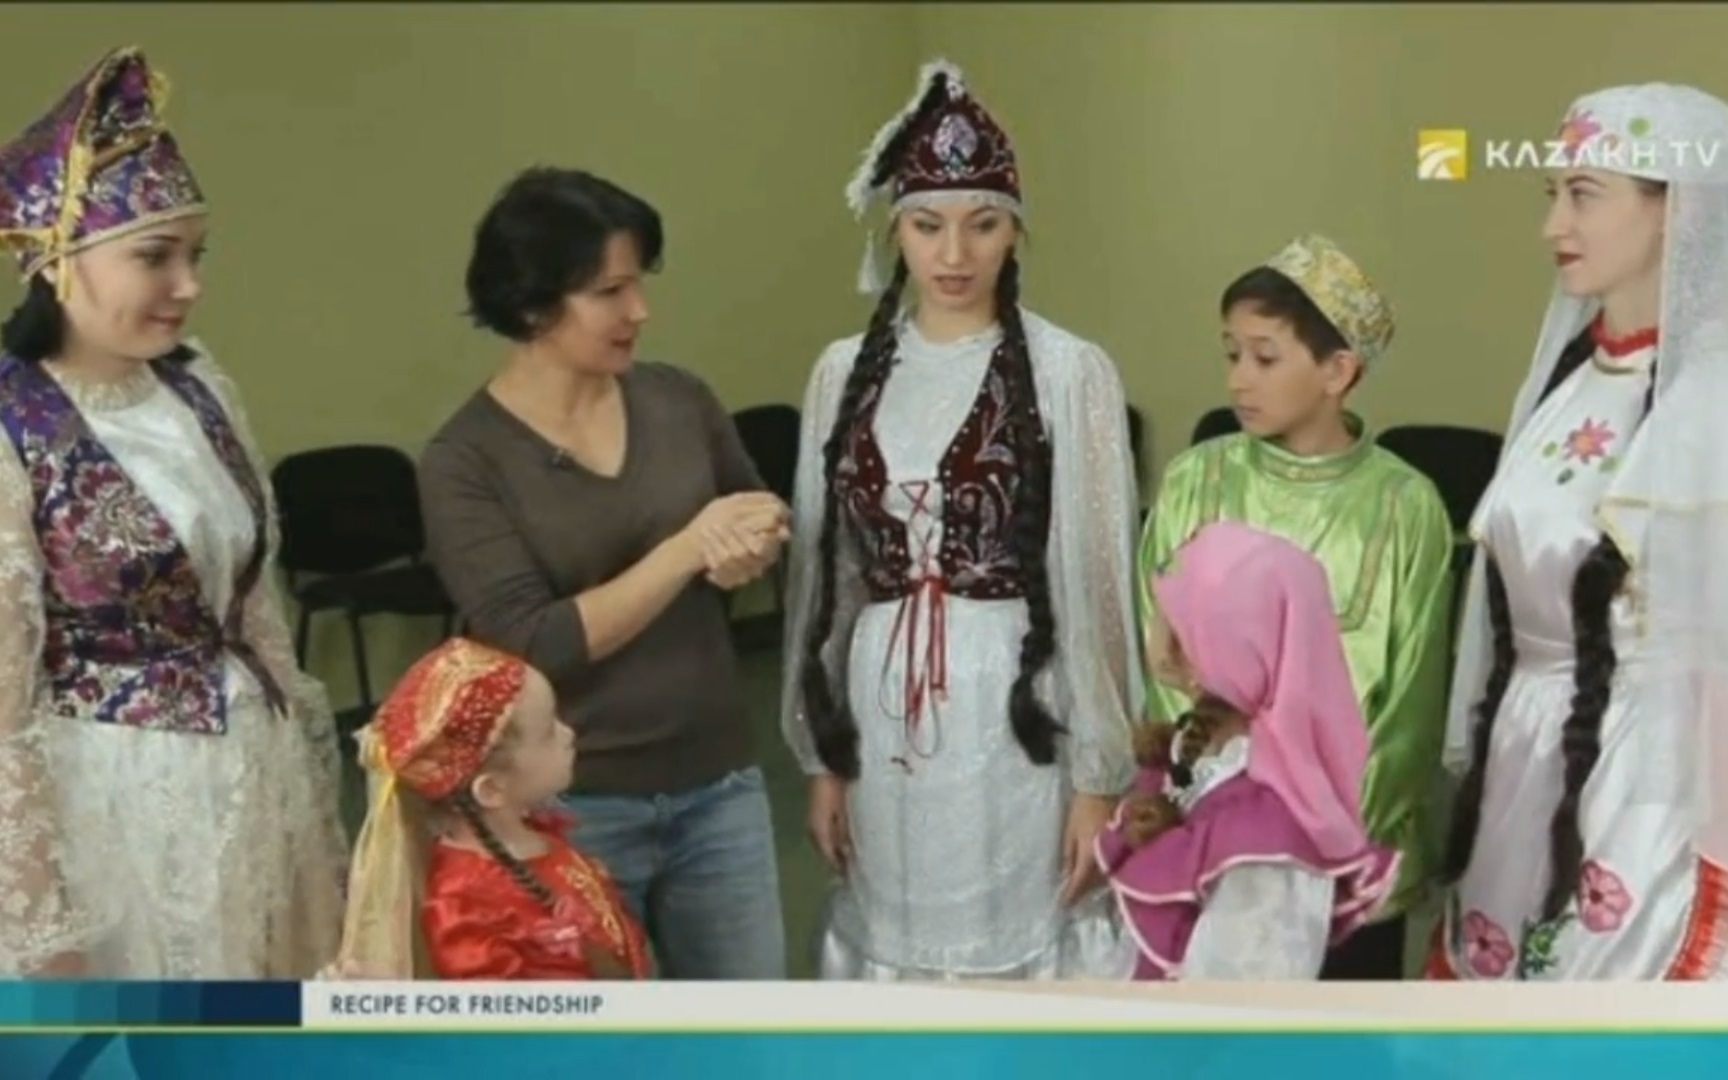 The culture of the tatars of Kazakhstan